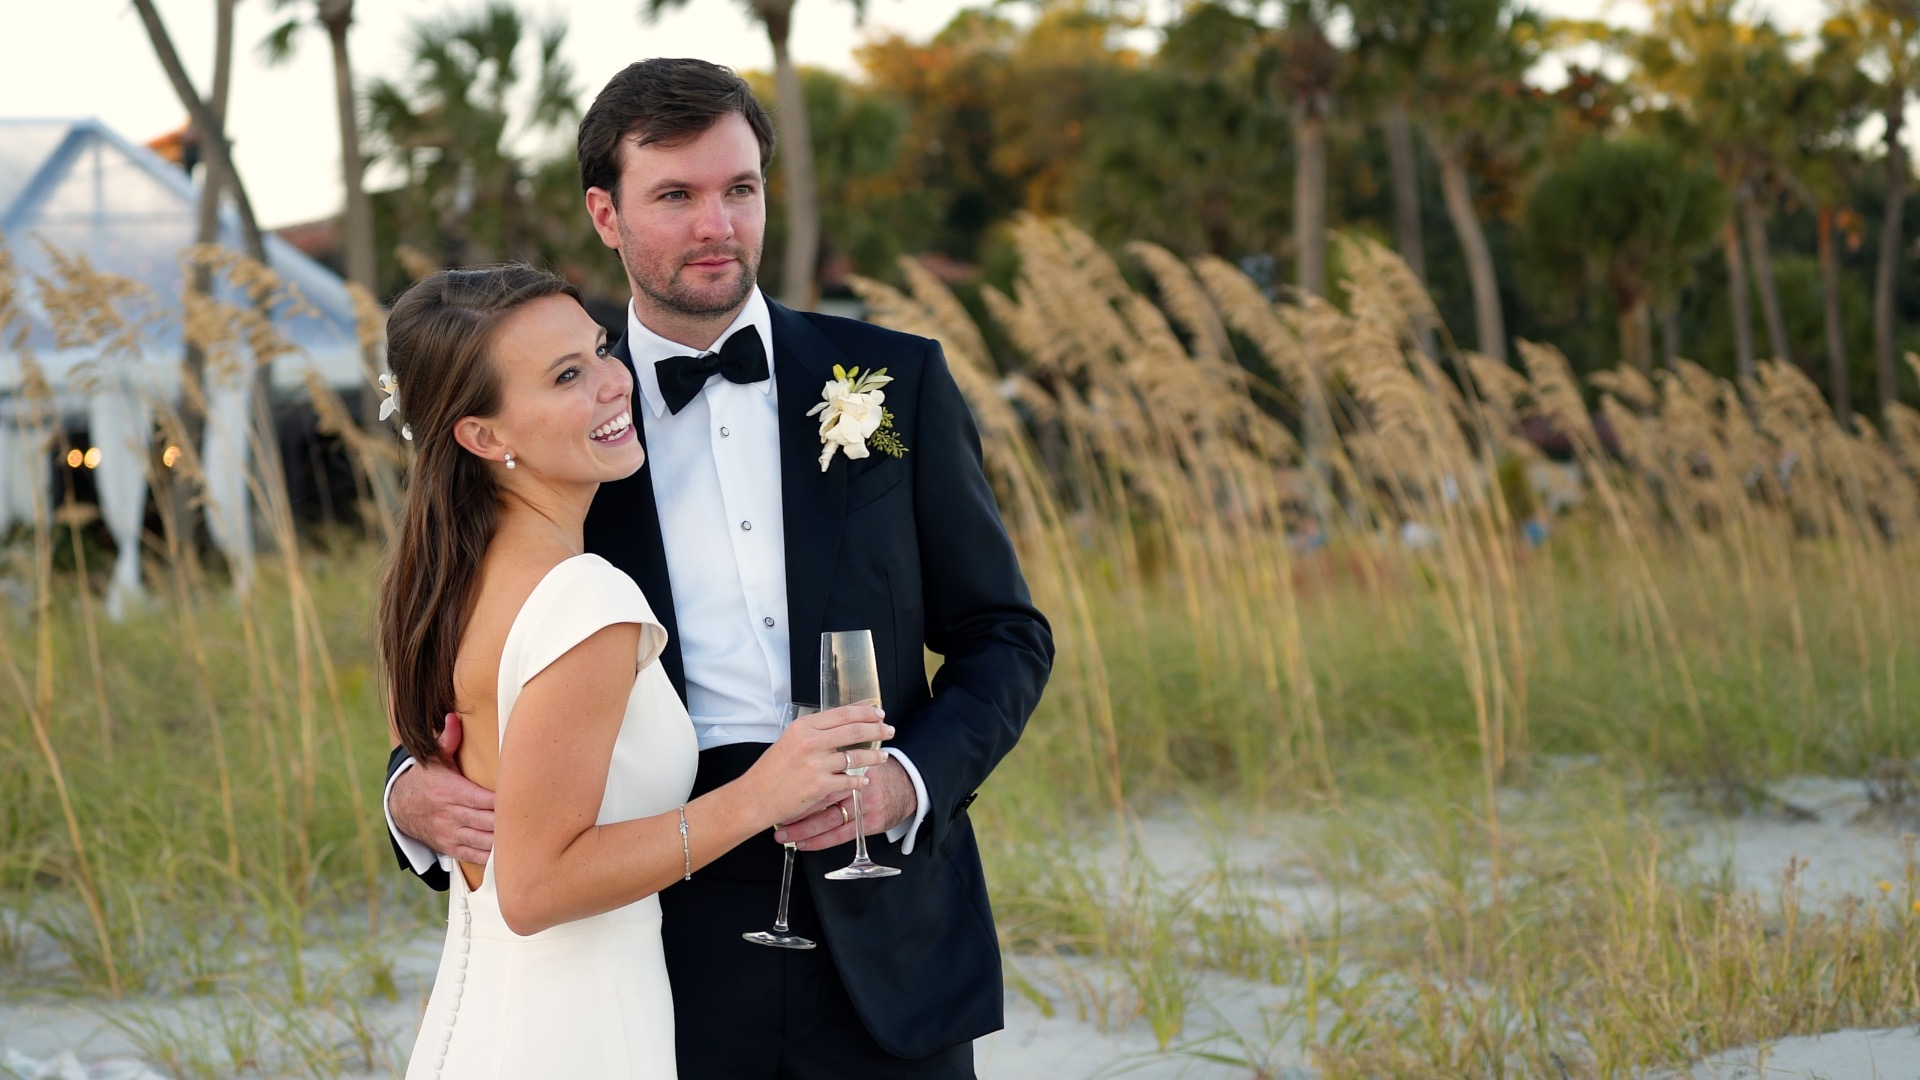 Katie + Will | Sea Island, Georgia | Ocean Forest Golf Club